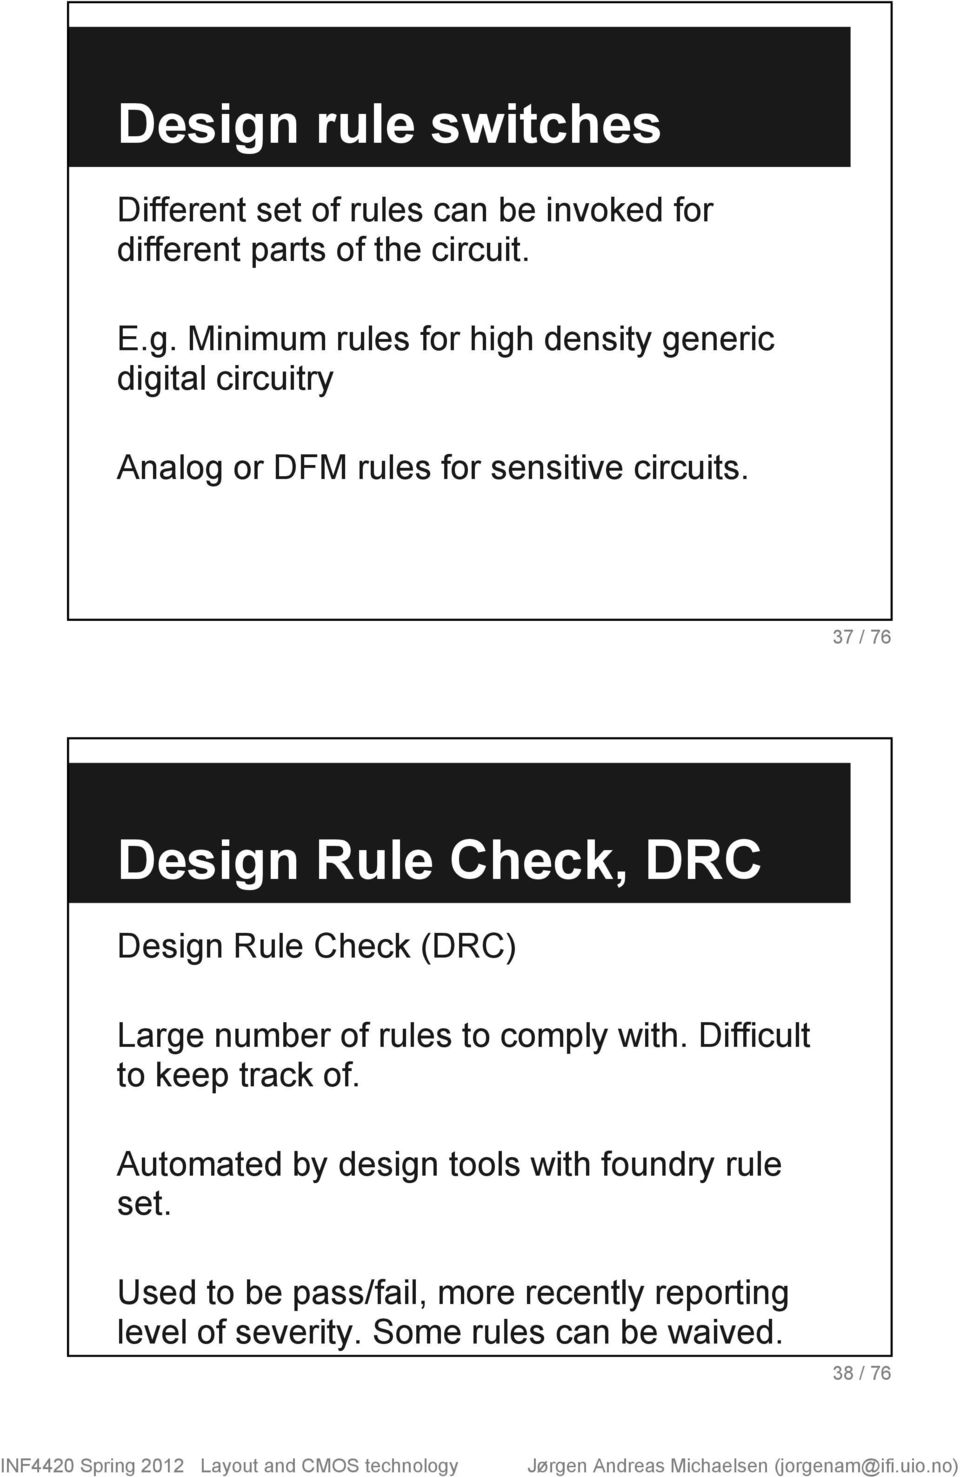 Difficult to keep track of. Automated by design tools with foundry rule set.